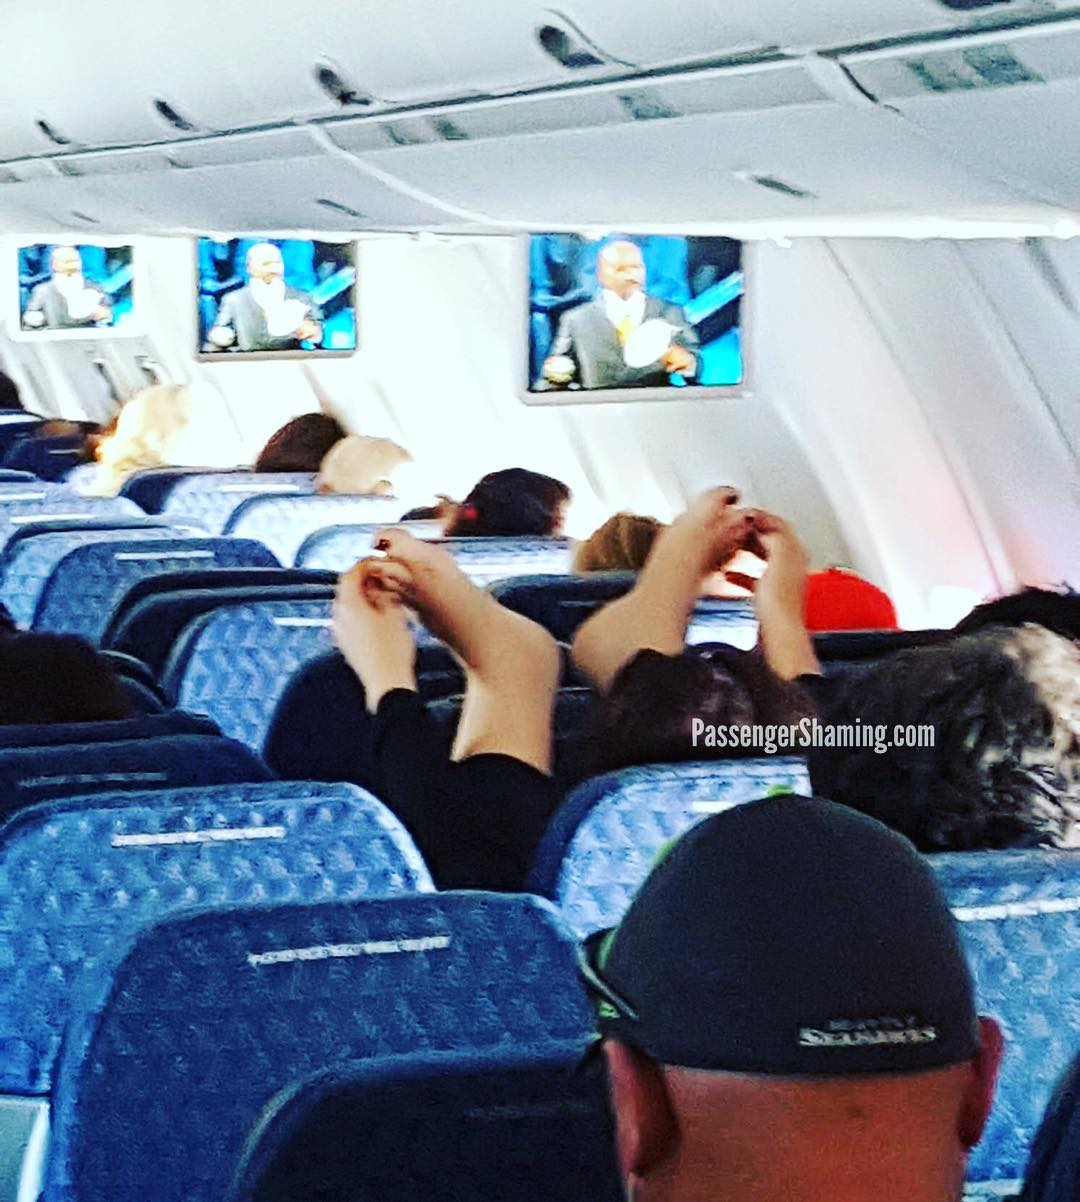 people travelling in aricraft funny pictures 5 - Just see these shocking pictures inside the flight